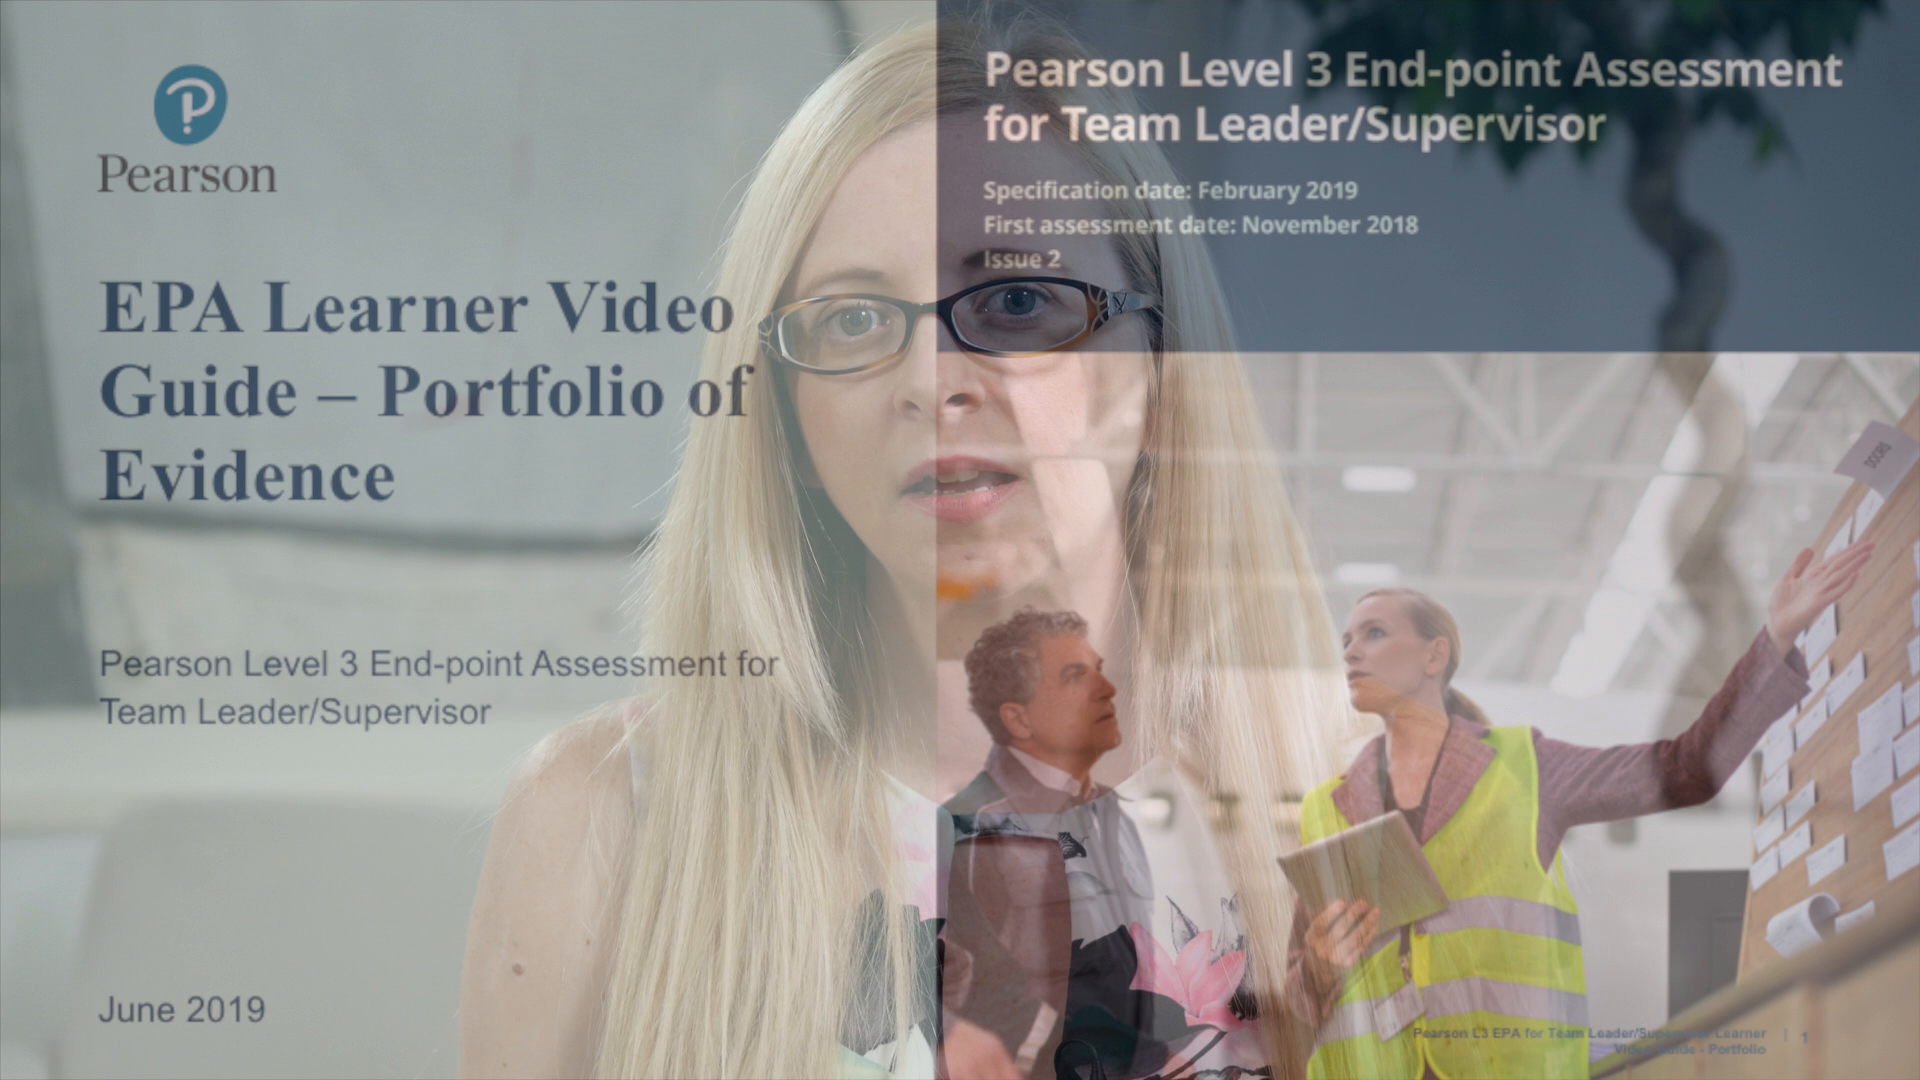 Pearson EPA Learner Video Guide: Team Leader - Portfolio of Evidence